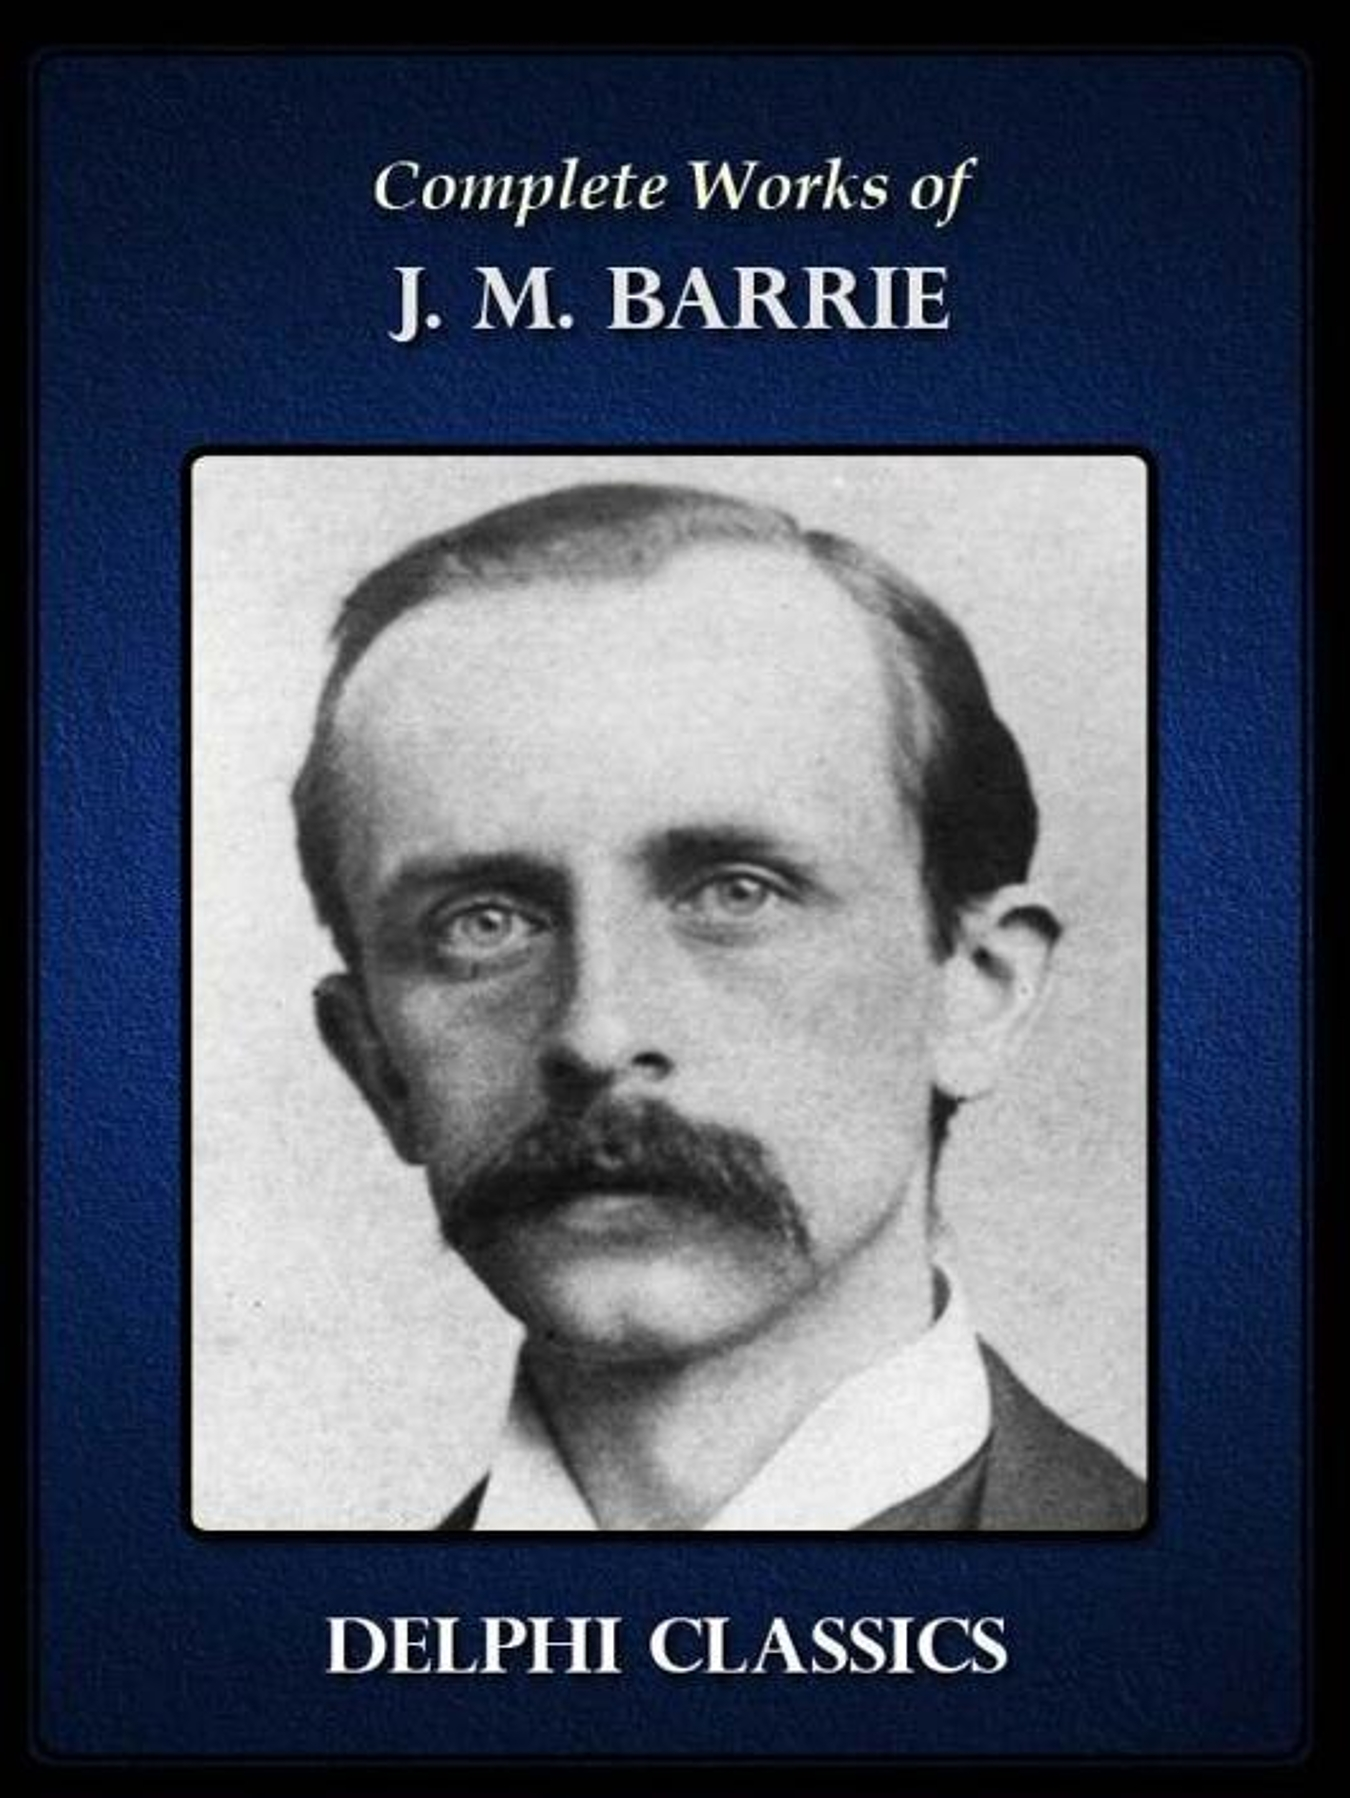 mr james m barrie James matthew barrie james matthew barrie was born at kirriemuir, forfarshire, on may 9, 1860 kirriemuir, as soberly stated by the encyclopædia britannica, is a borough of barony and a market town of forfarshire, scotland, beautifully situated on an eminence above the glen through which the gairie flows.